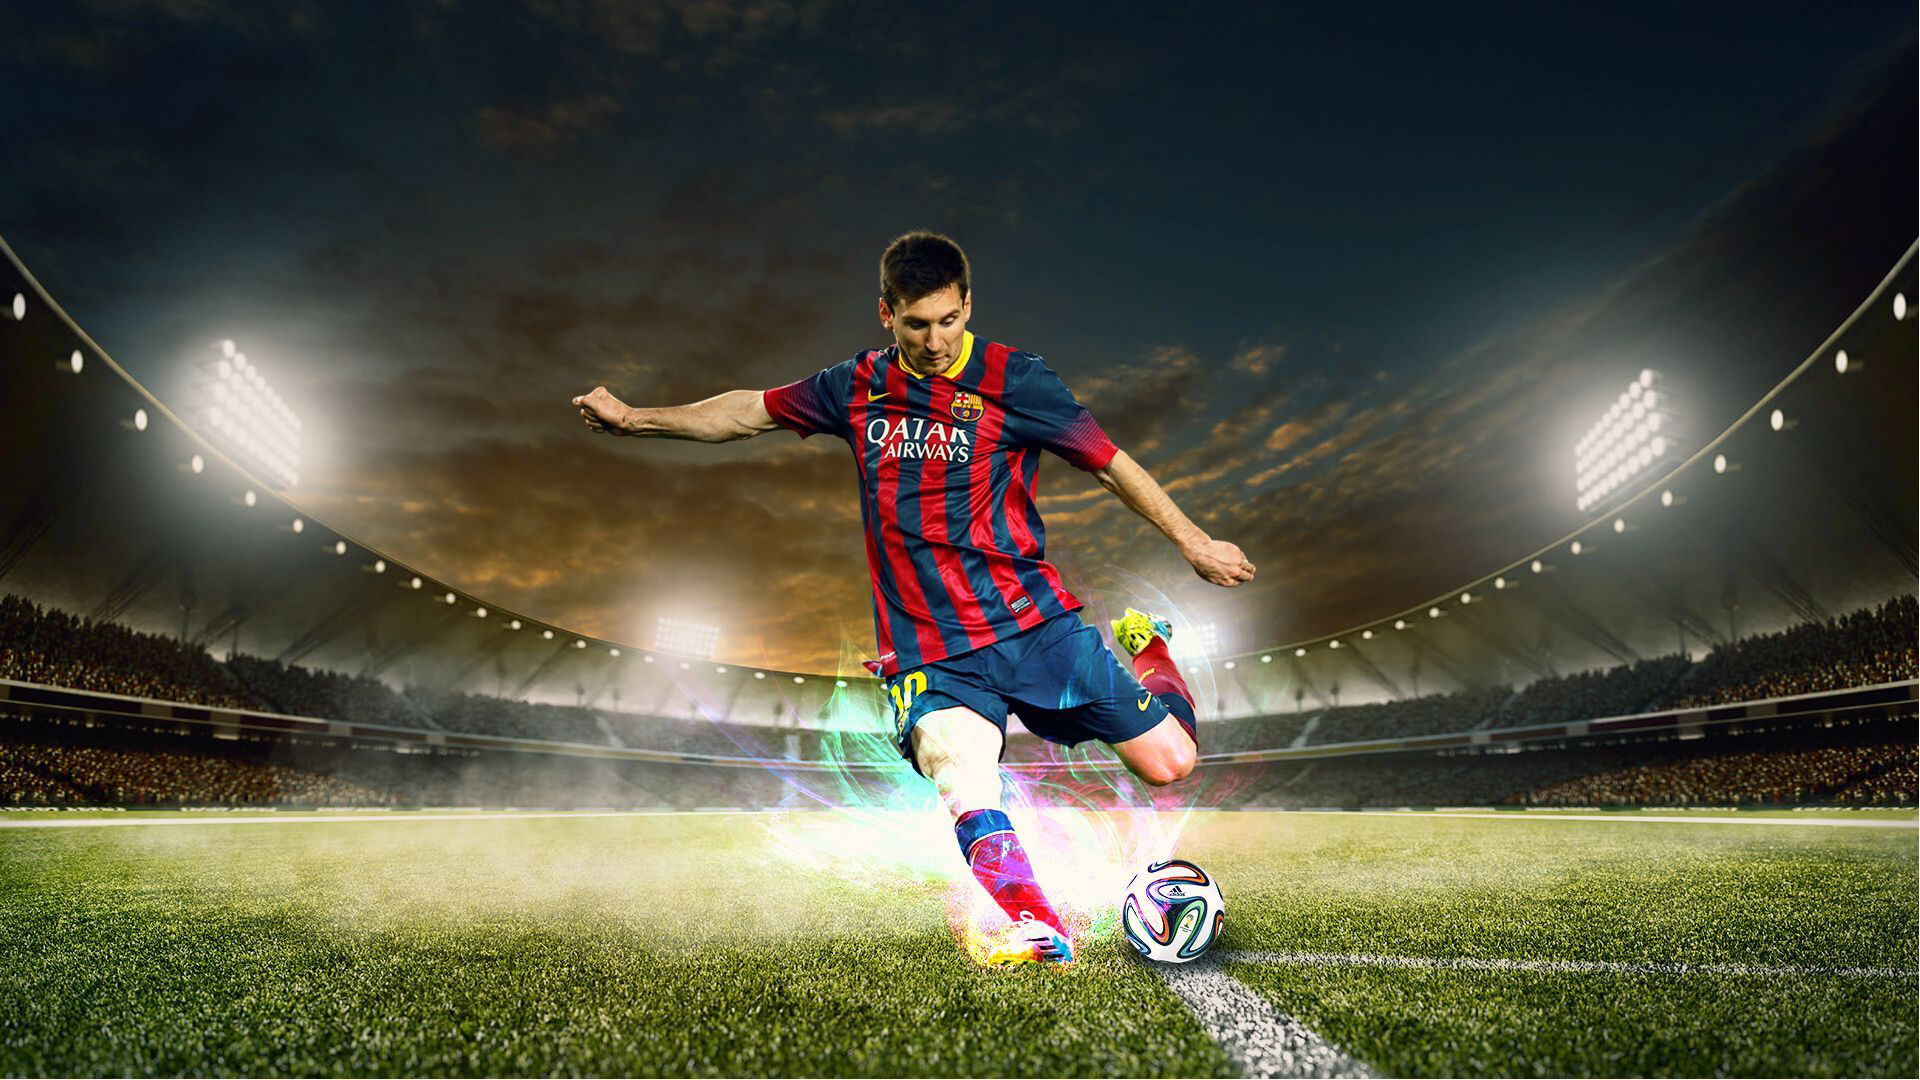 Download Football Player Is Hitting A Ball With Leg Wearing Red Blue Dress Hd Football